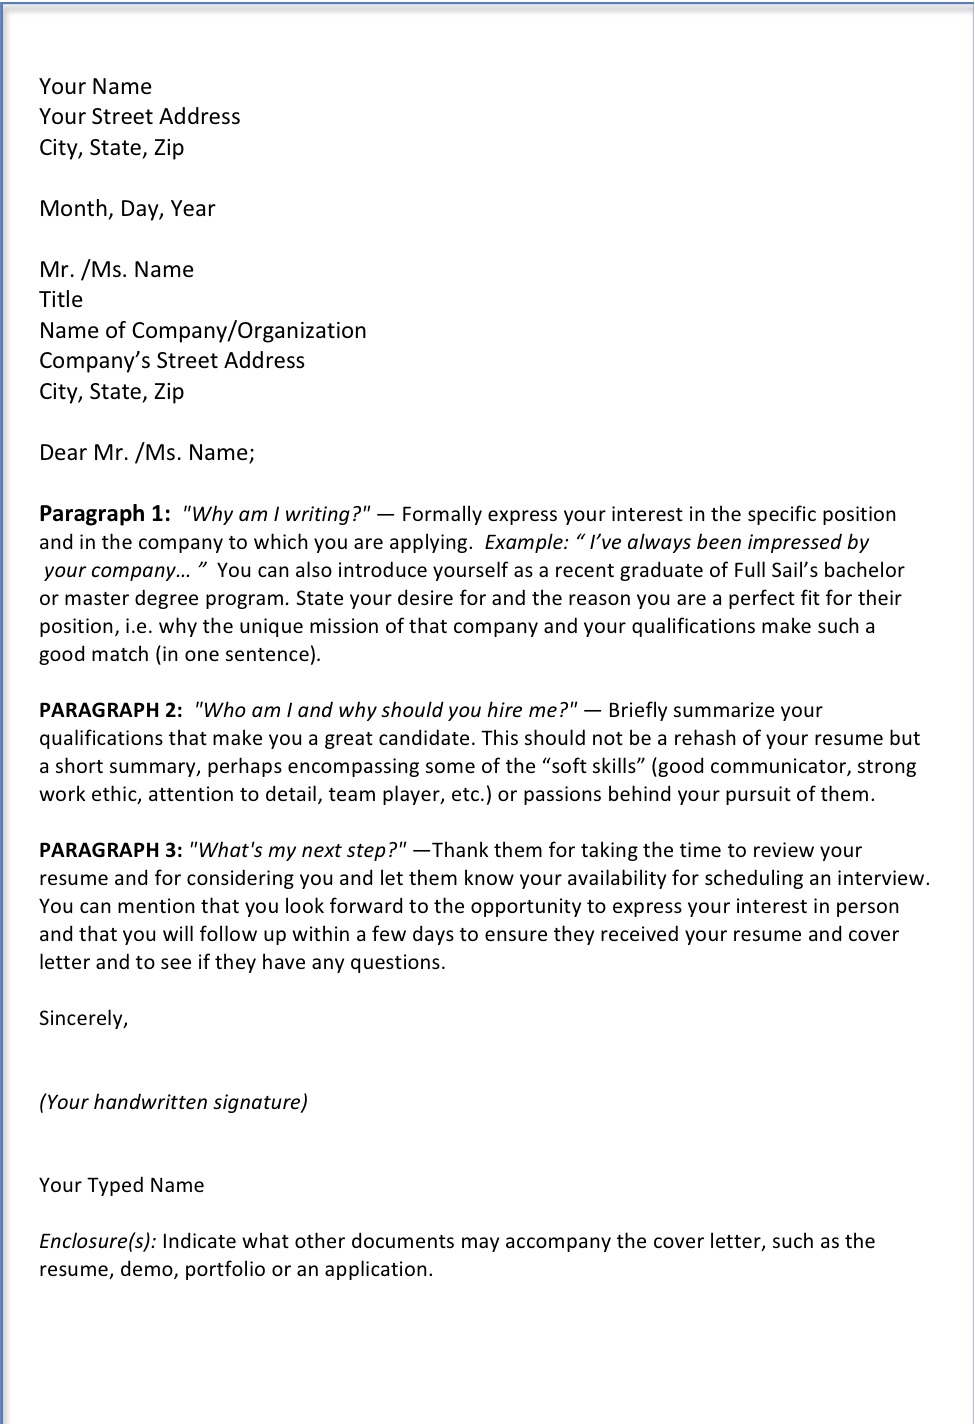 Best Resume And Cover Letter Writers Braumracing Com